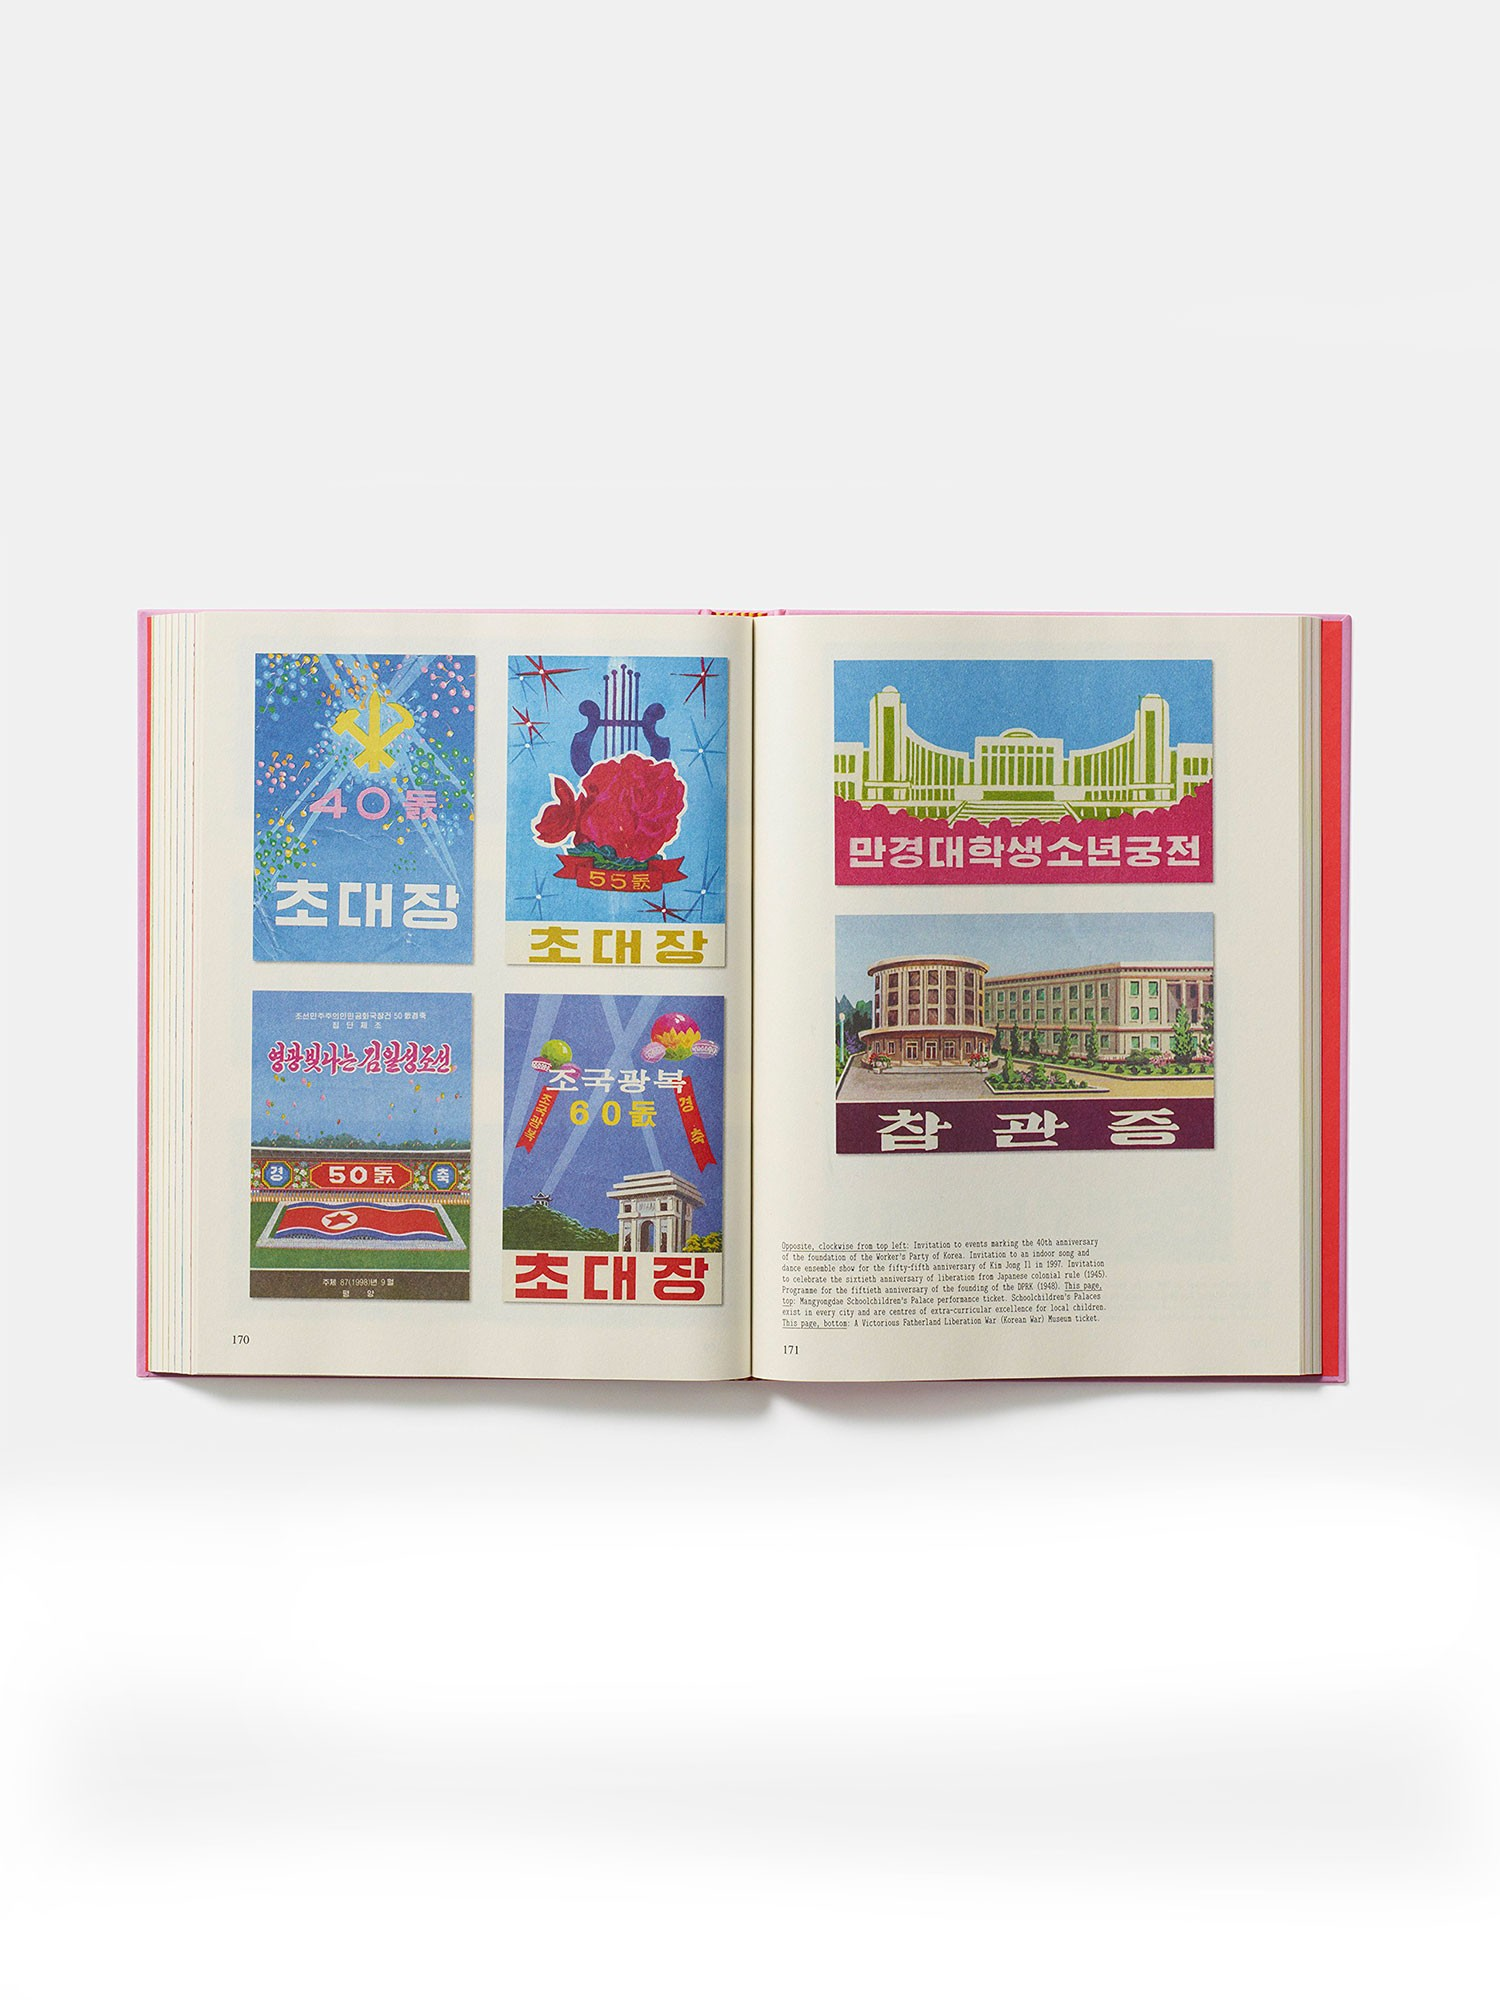 Wallpaper Sticker Dinding Polos Terbagus Untuk Made In north Korea Graphics From Everyday Life In the Dpkr